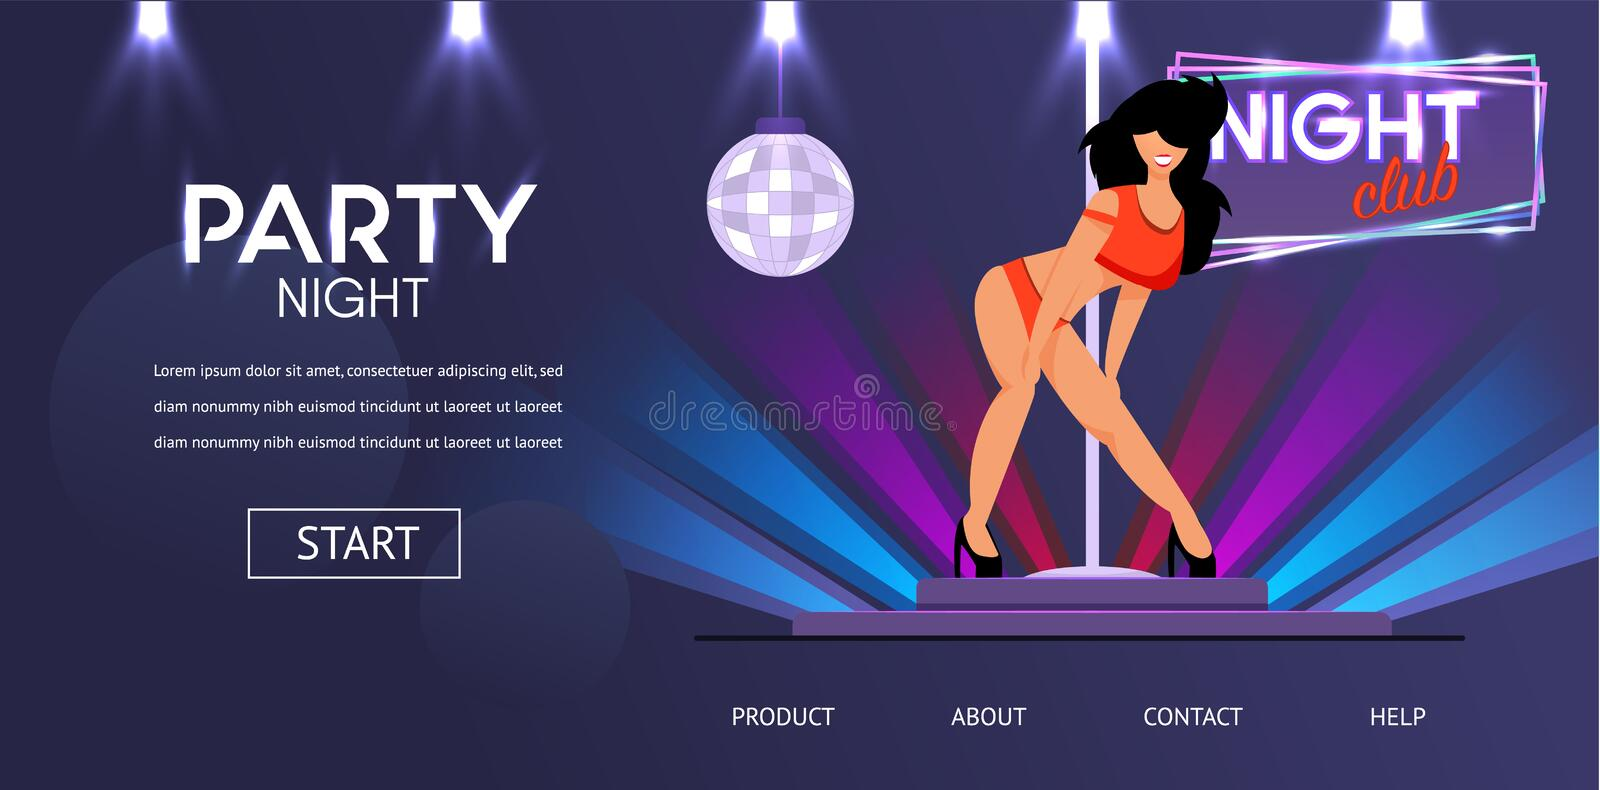 Night Club Party with Girl Dancer in Underwear vector illustration